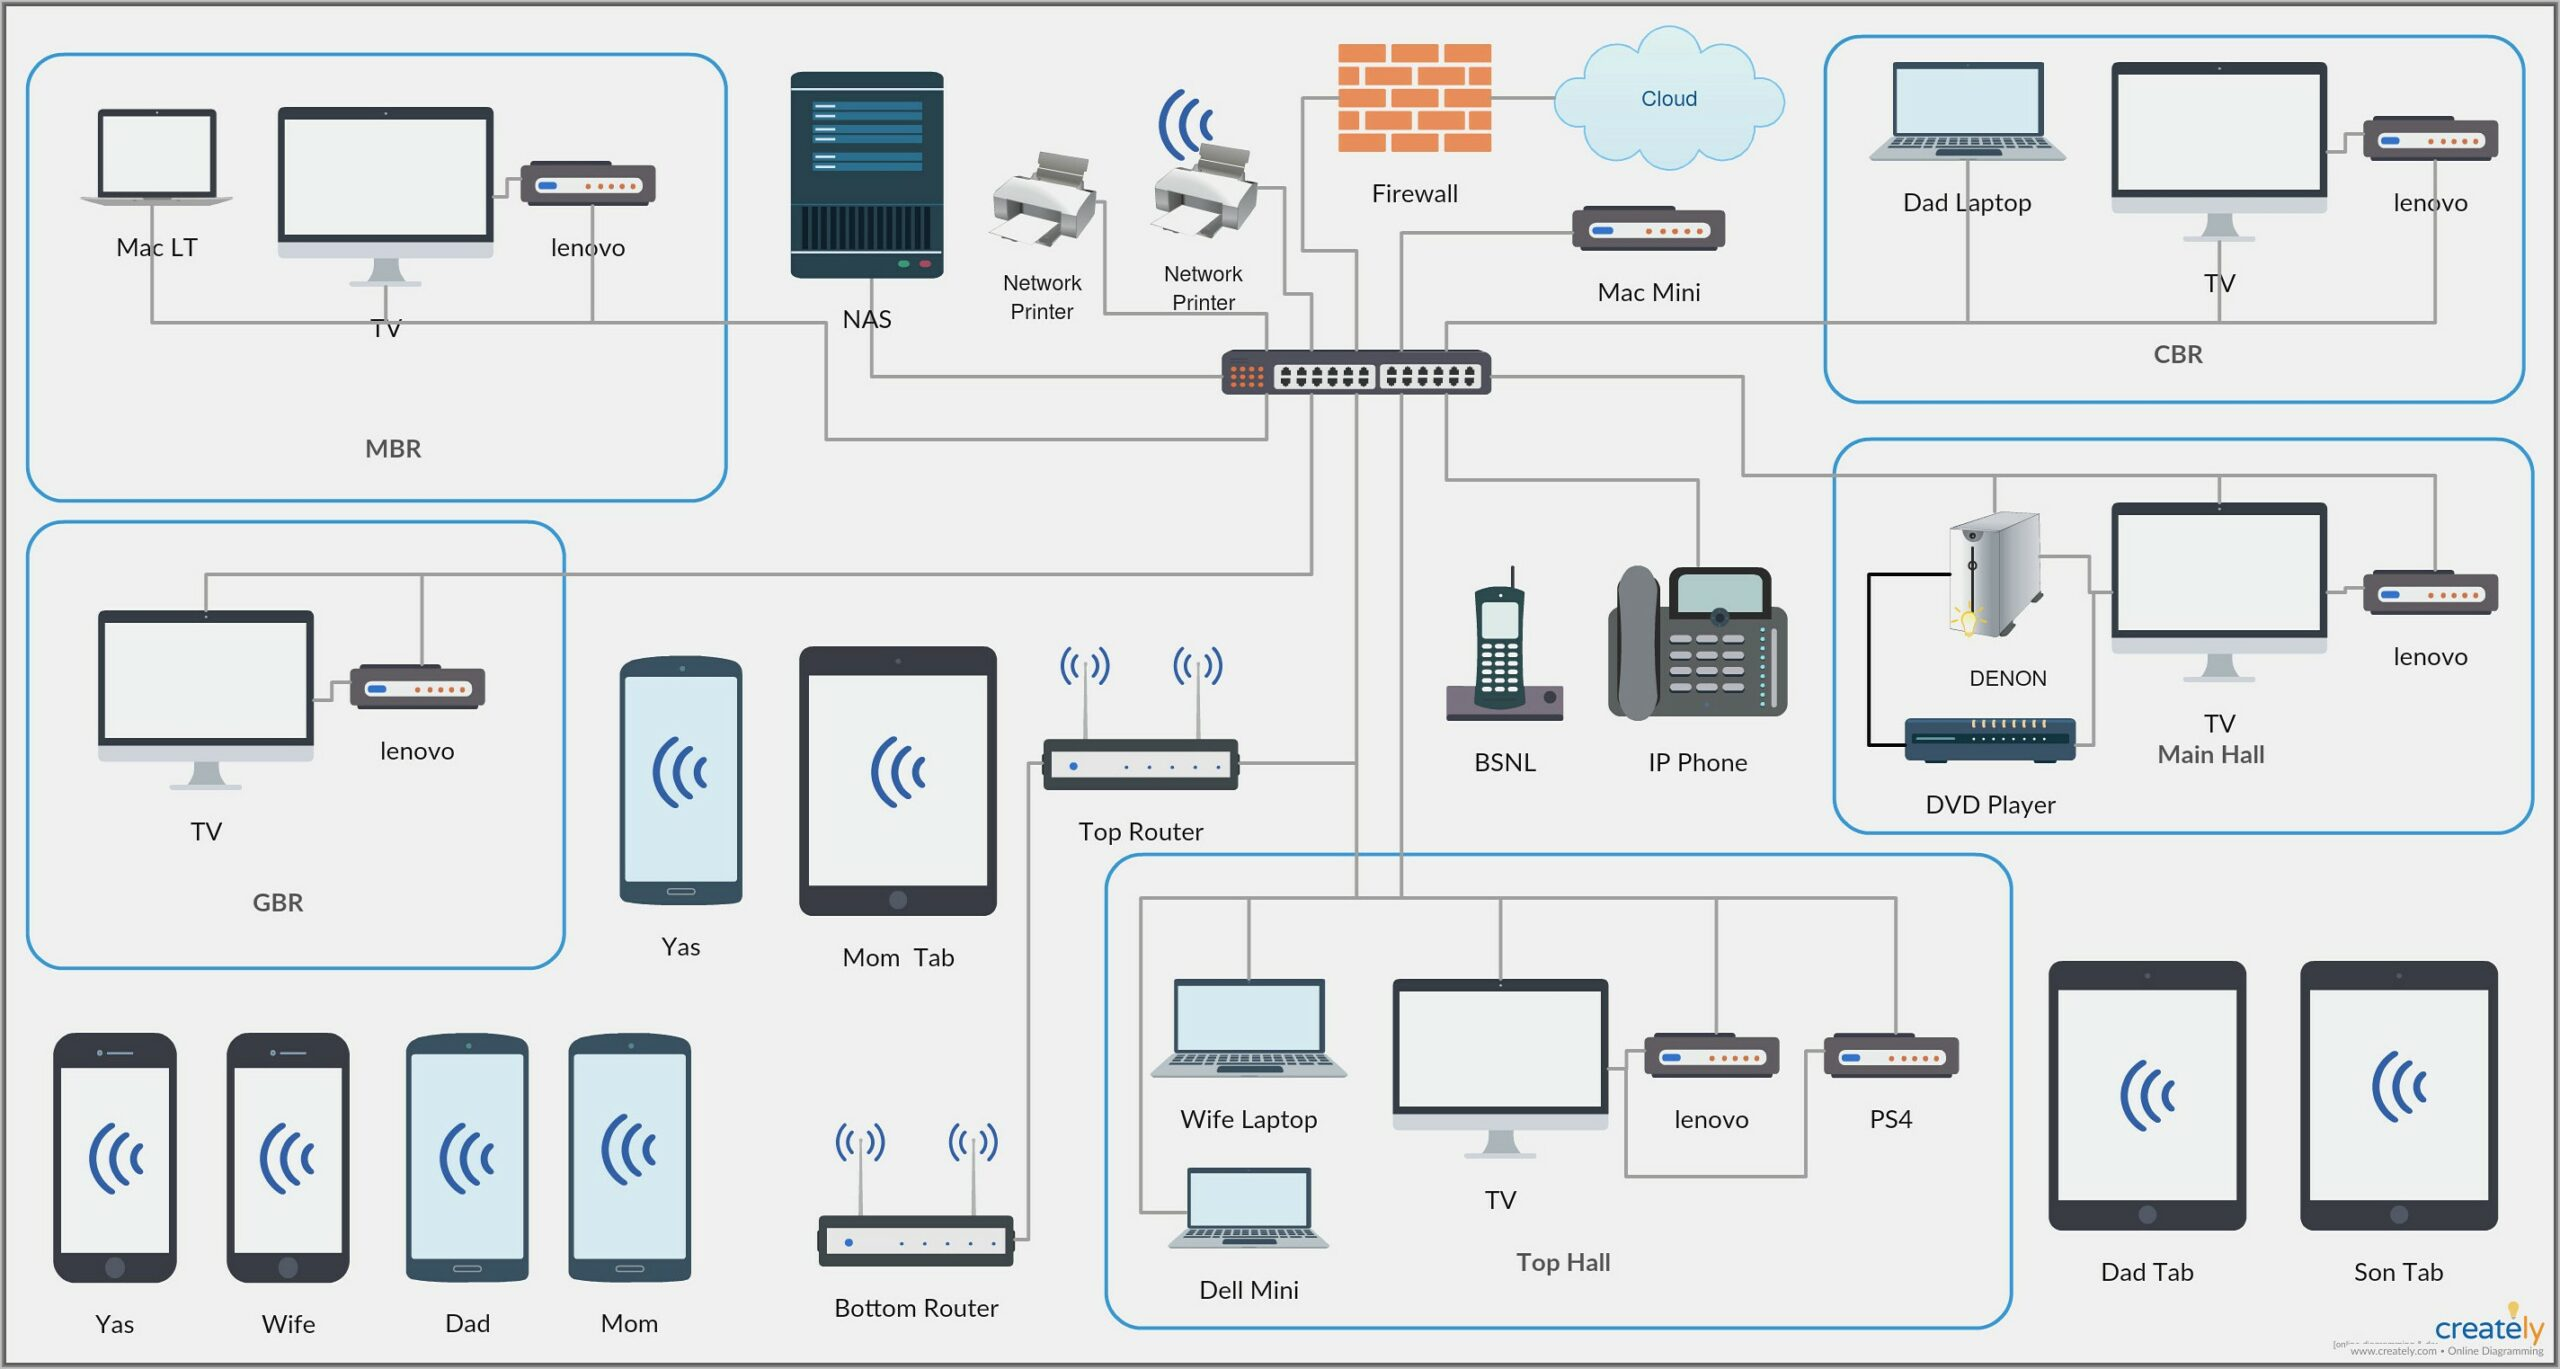 Visio Shapes Network Topology